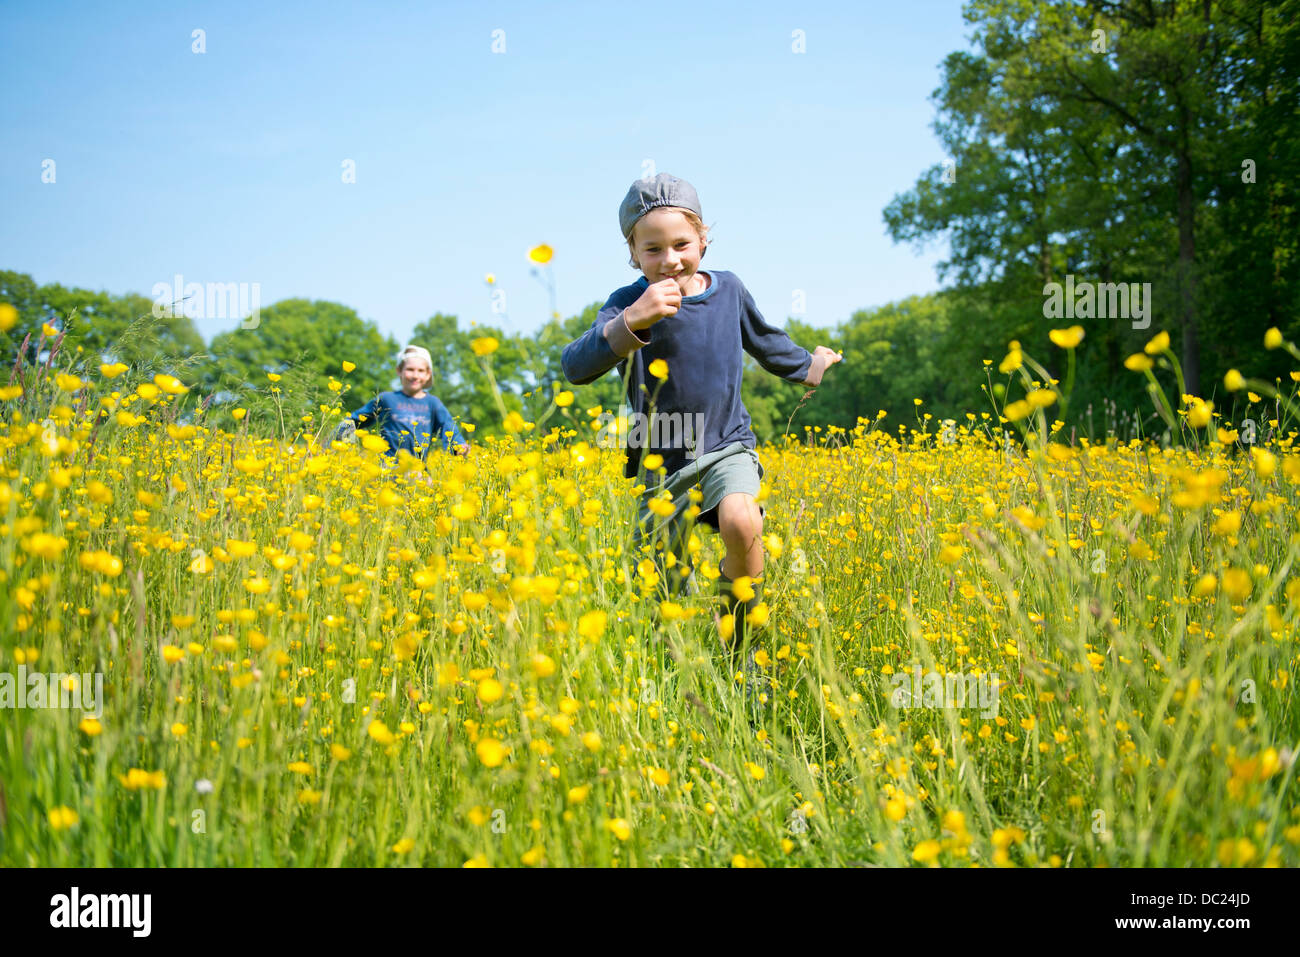 Brothers running through long grass and flowers - Stock Image